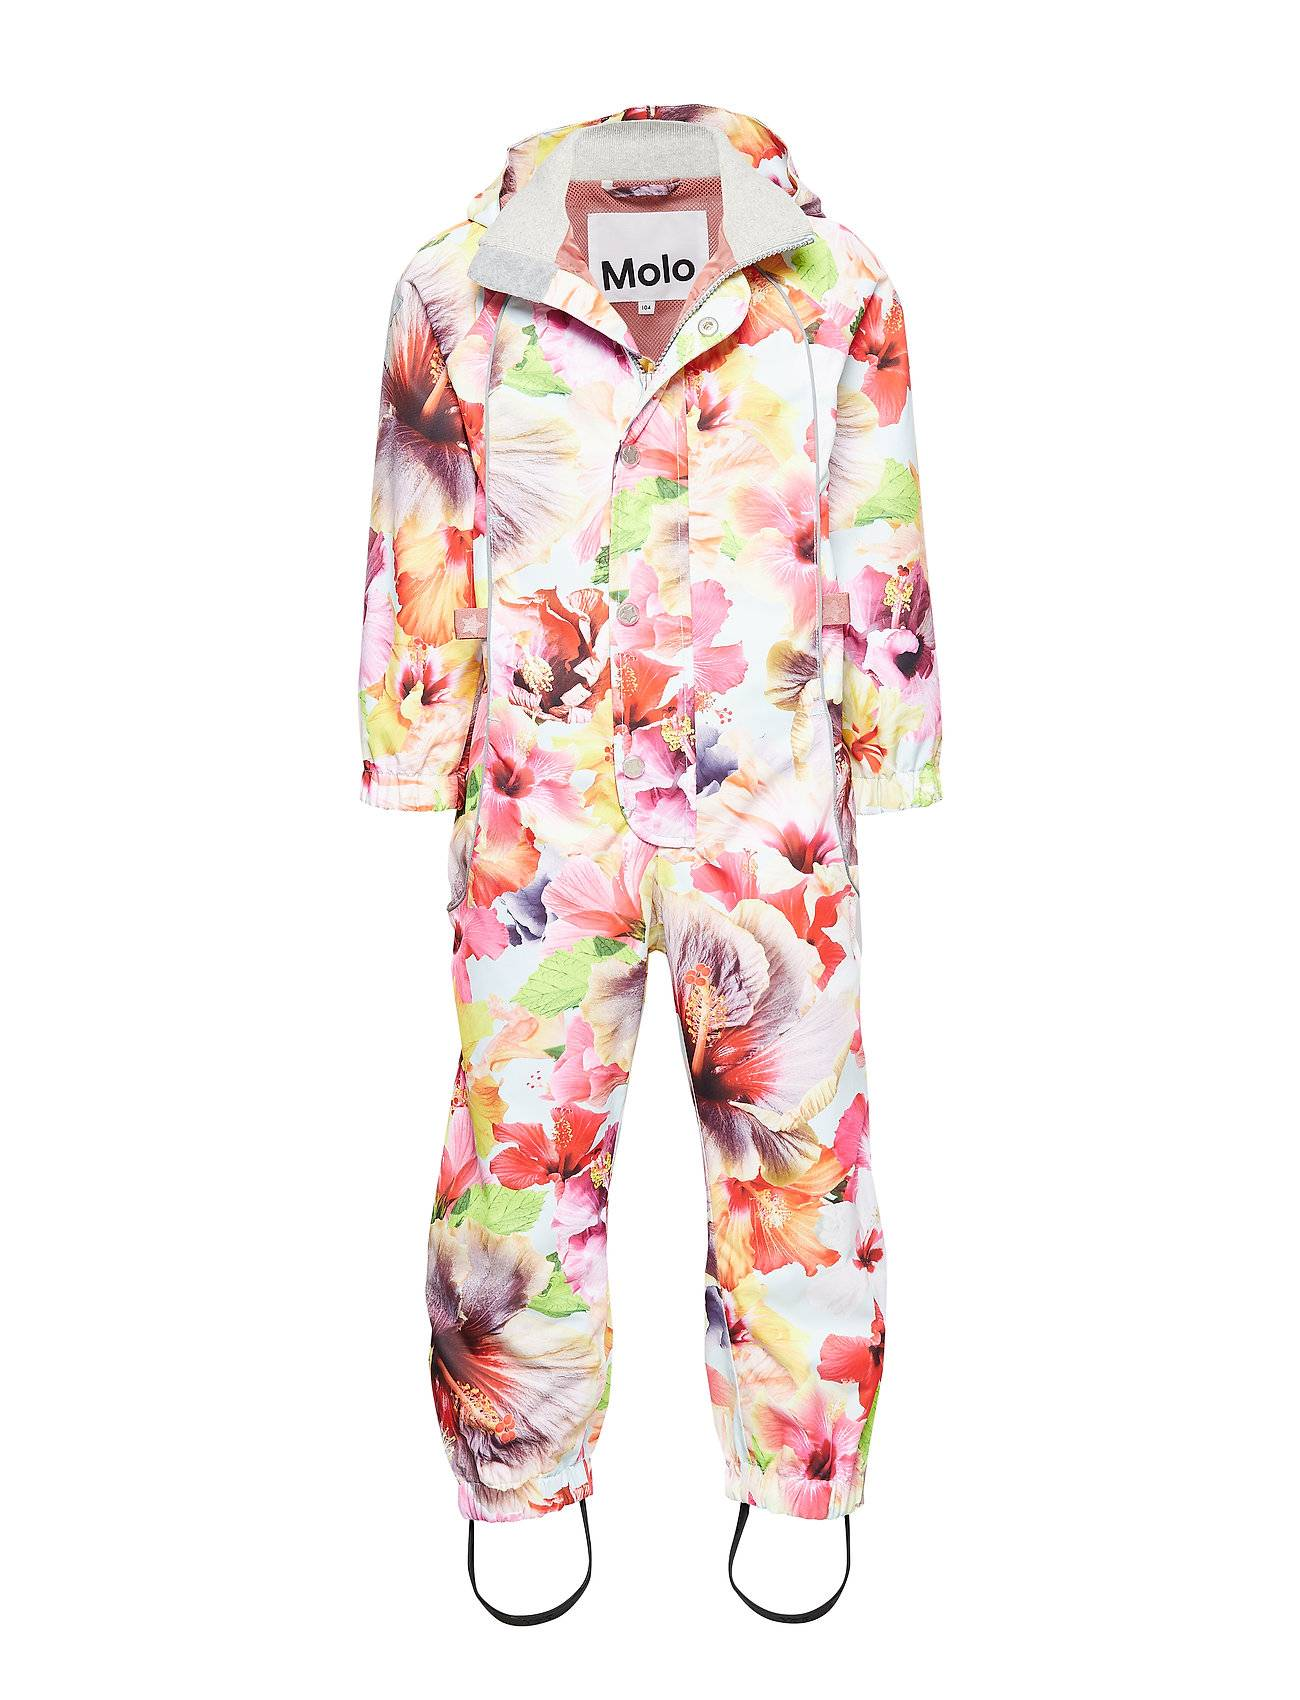 Molo Polly Outerwear Shell Clothing Shell Coveralls Vaaleanpunainen Molo